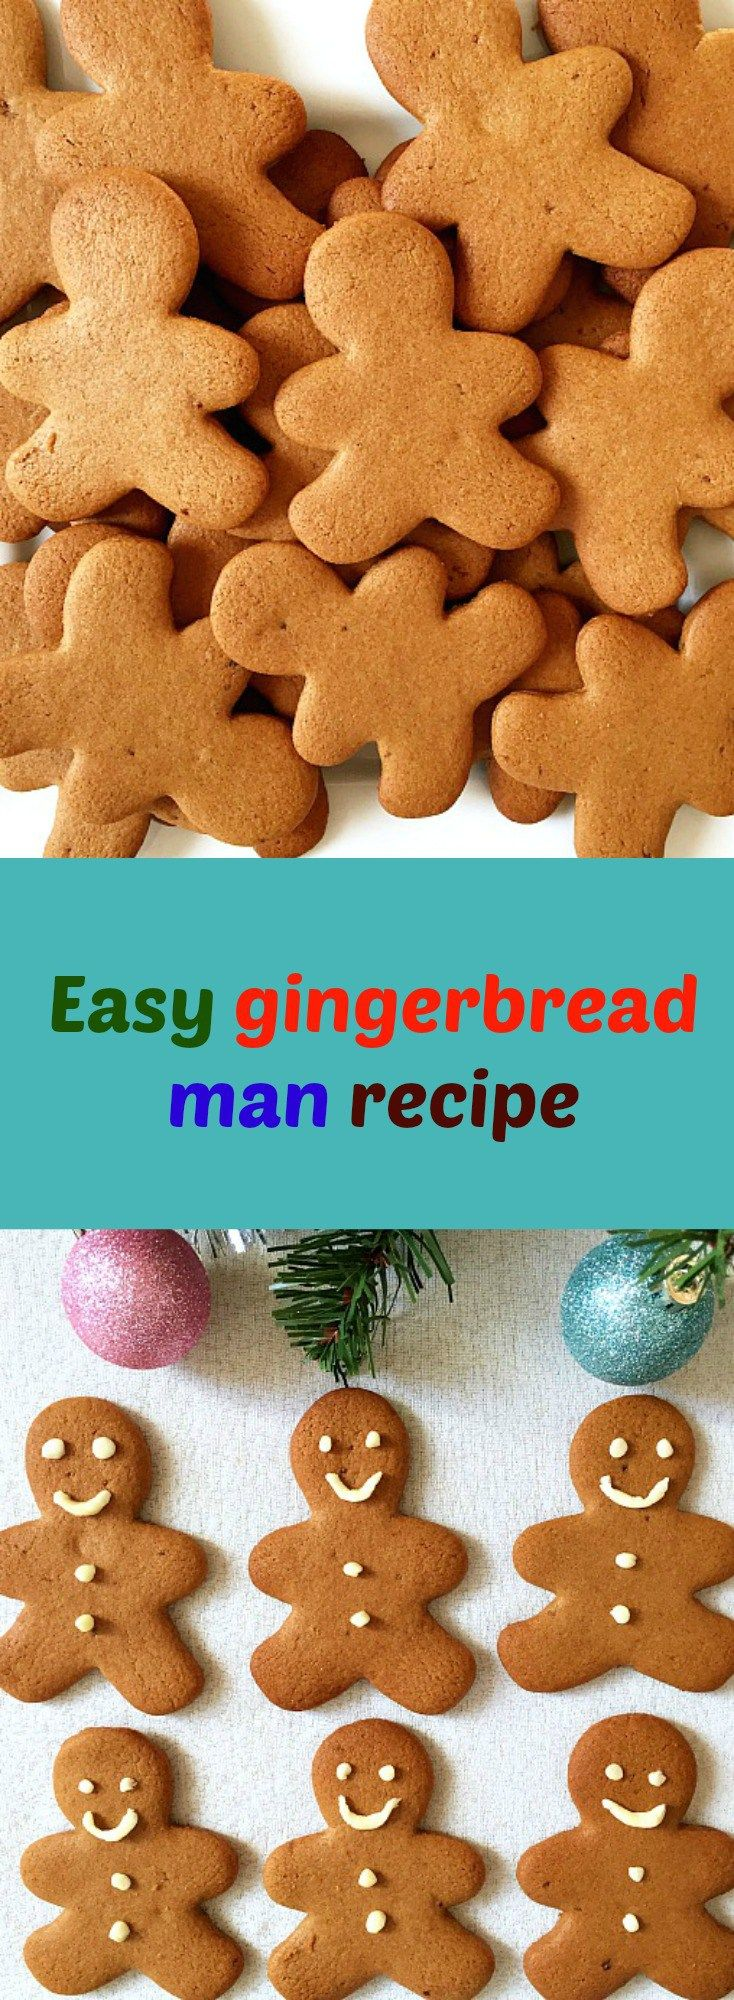 Easy gingerbread man recipe, a fun way to get Christmas